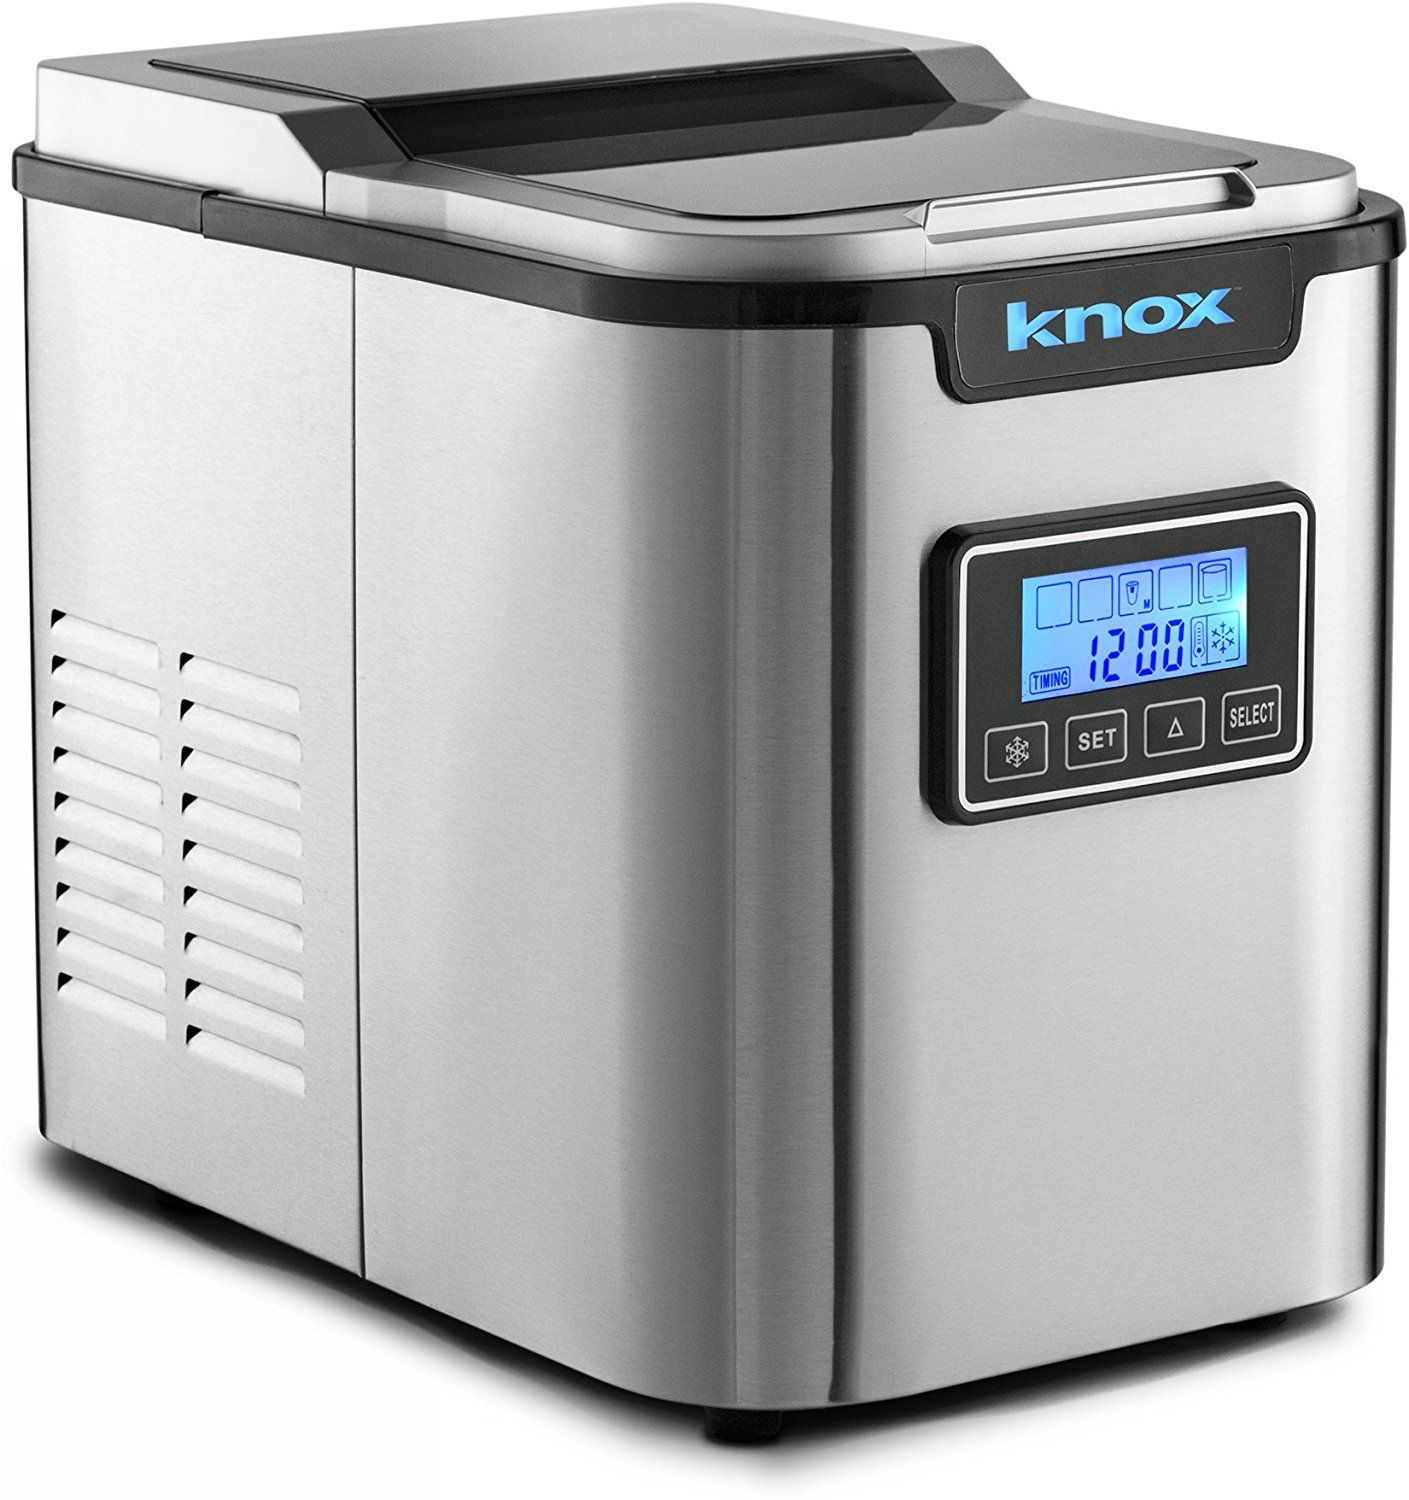 Knox Stainless Steel Ice Maker Makes 27 Pounds Per Day 3